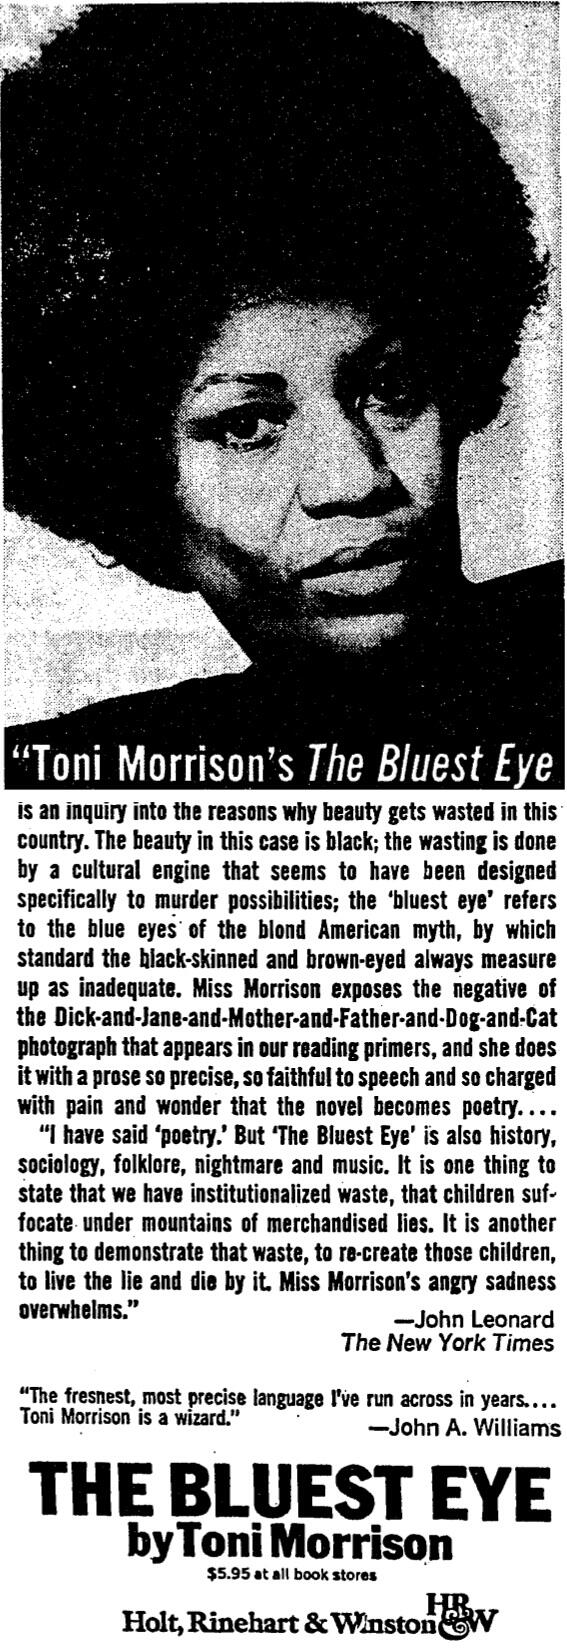 fishingboatproceeds: Happy 83rd Birthday to Toni Morrison, our greatest living writer. I nearly failed English my junior year of high school, and in order to get a D, I was forced to read and write papers about two books over summer vacation. One was a Shakespeare play; the other was The Bluest Eye. I'd already read Song of Solomon, which I'd loved even though I felt like a lot of it flew over my head. But The Bluest Eye was exactly what I needed. It was, as John Leonard wrote in the New York Times, nightmare and music. (Image via Dwight Garner)